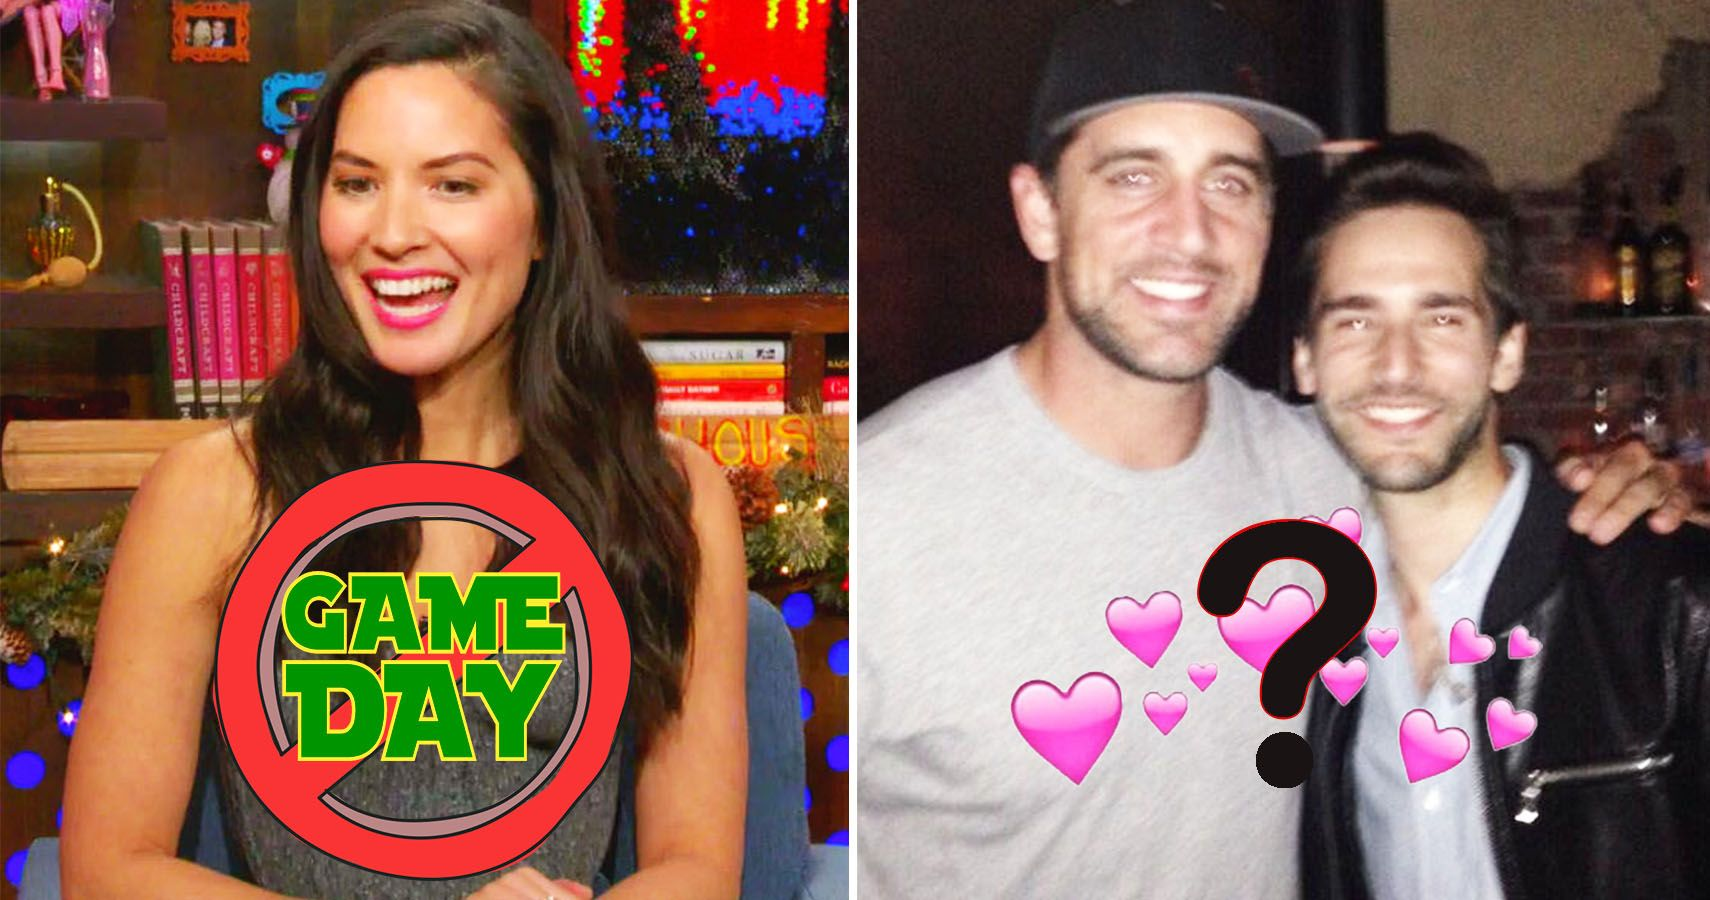 35322ab38 Aaron Rodgers And Olivia Munn's Breakup: Things You Need To Know About  Their Relationship And Split